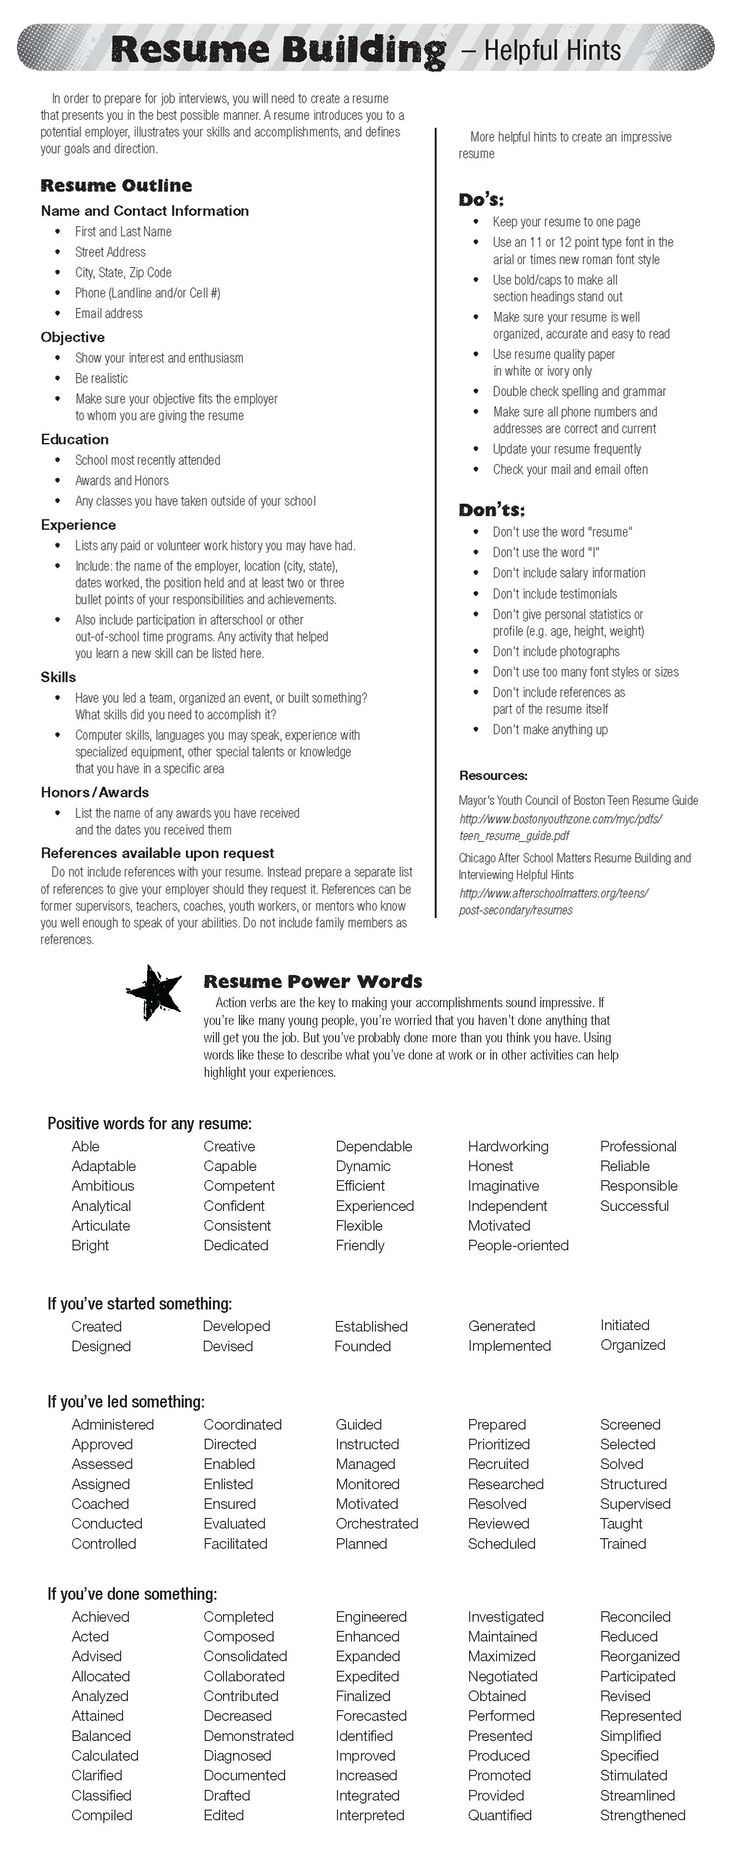 Picnictoimpeachus  Sweet  Ideas About Resume On Pinterest  Cv Format Resume Cv And  With Fair  Ideas About Resume On Pinterest  Cv Format Resume Cv And Resume Templates With Cute Make A Job Resume Also  Resume Words In Addition Entry Level Security Guard Resume Sample And Resume Objective For Part Time Job As Well As How Yo Make A Resume Additionally Resume Postings From Pinterestcom With Picnictoimpeachus  Fair  Ideas About Resume On Pinterest  Cv Format Resume Cv And  With Cute  Ideas About Resume On Pinterest  Cv Format Resume Cv And Resume Templates And Sweet Make A Job Resume Also  Resume Words In Addition Entry Level Security Guard Resume Sample From Pinterestcom